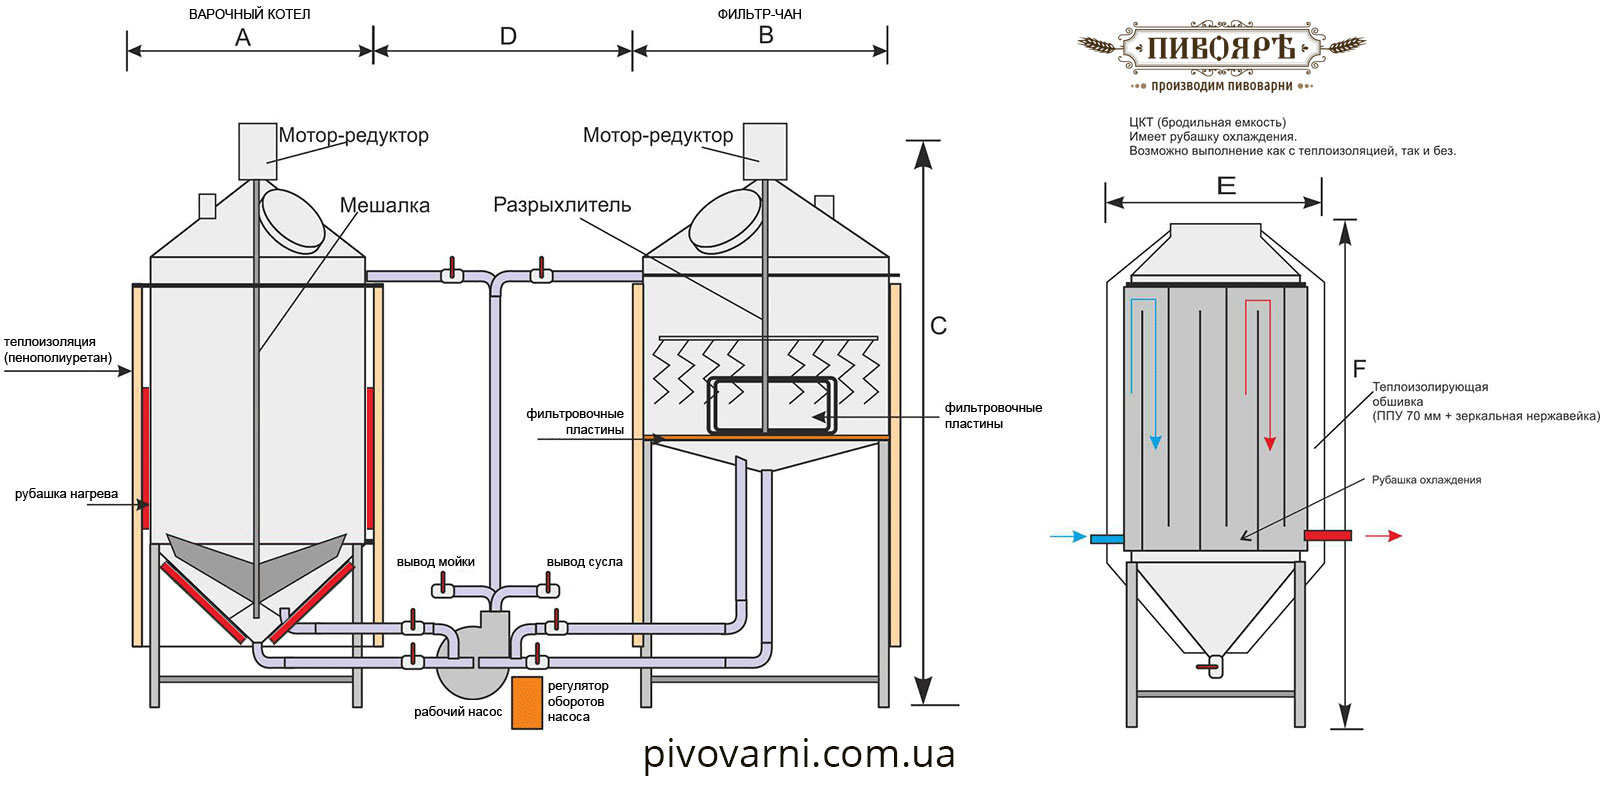 Mini brewery for 300 liters - Schematic diagram of the brewery